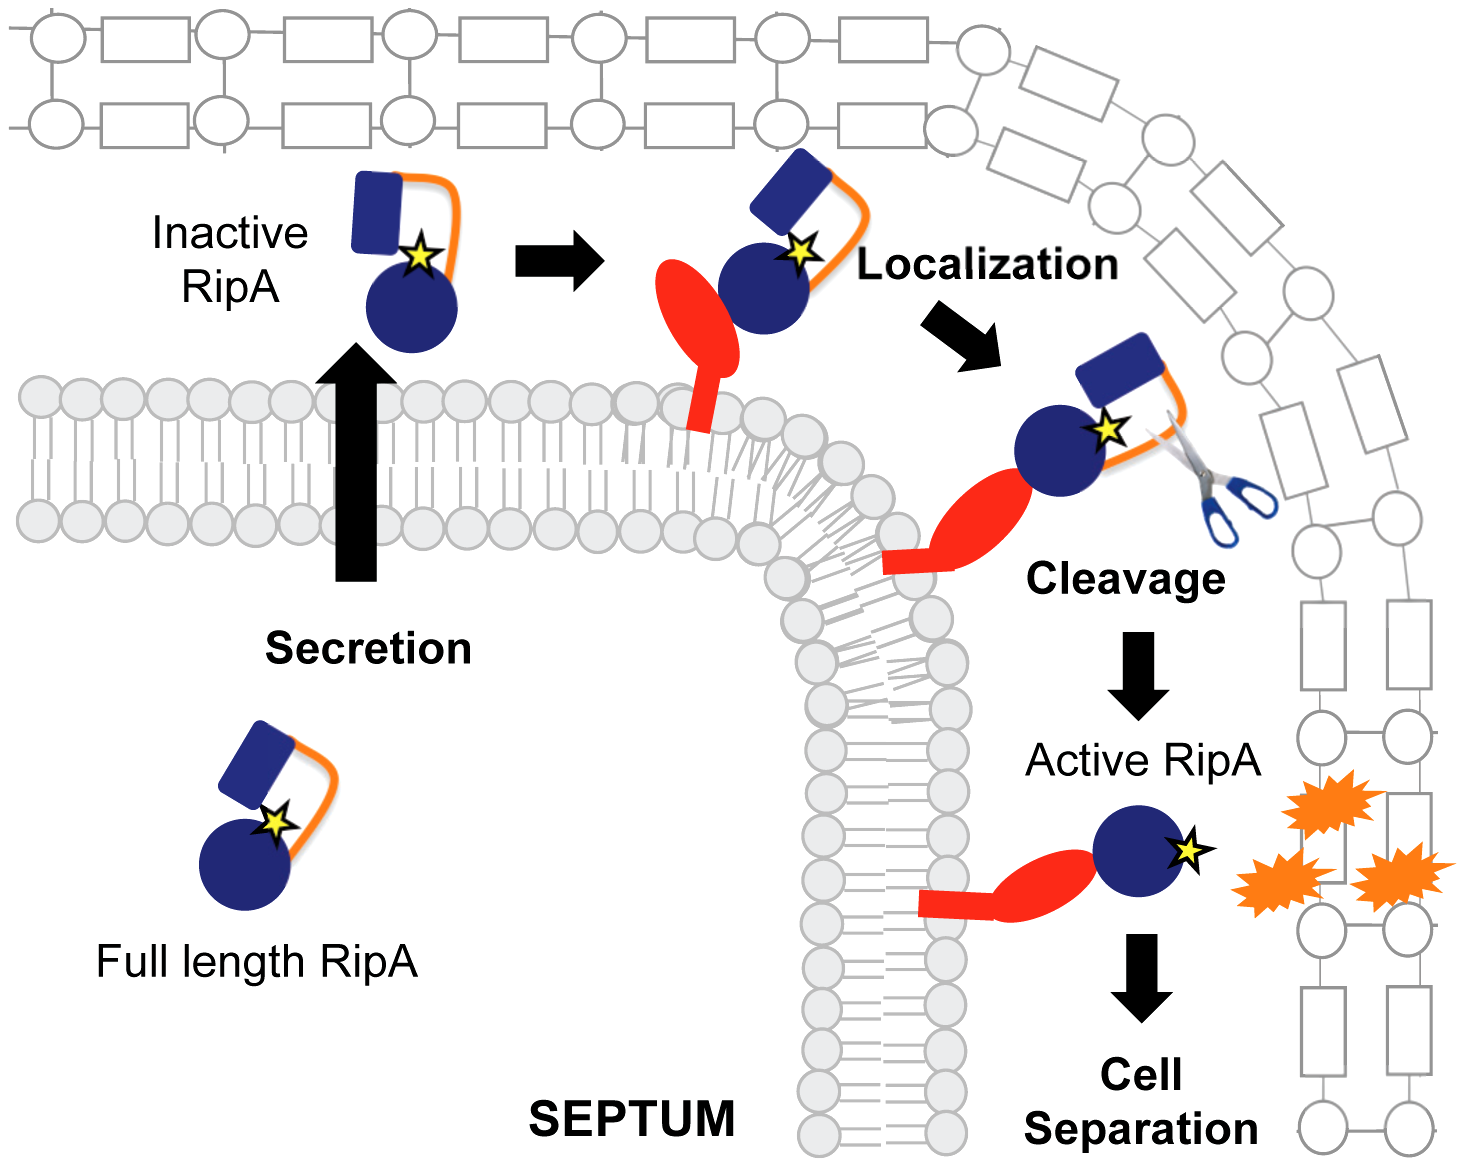 Model for RipA activation through proteolytic processing and protein interactions.